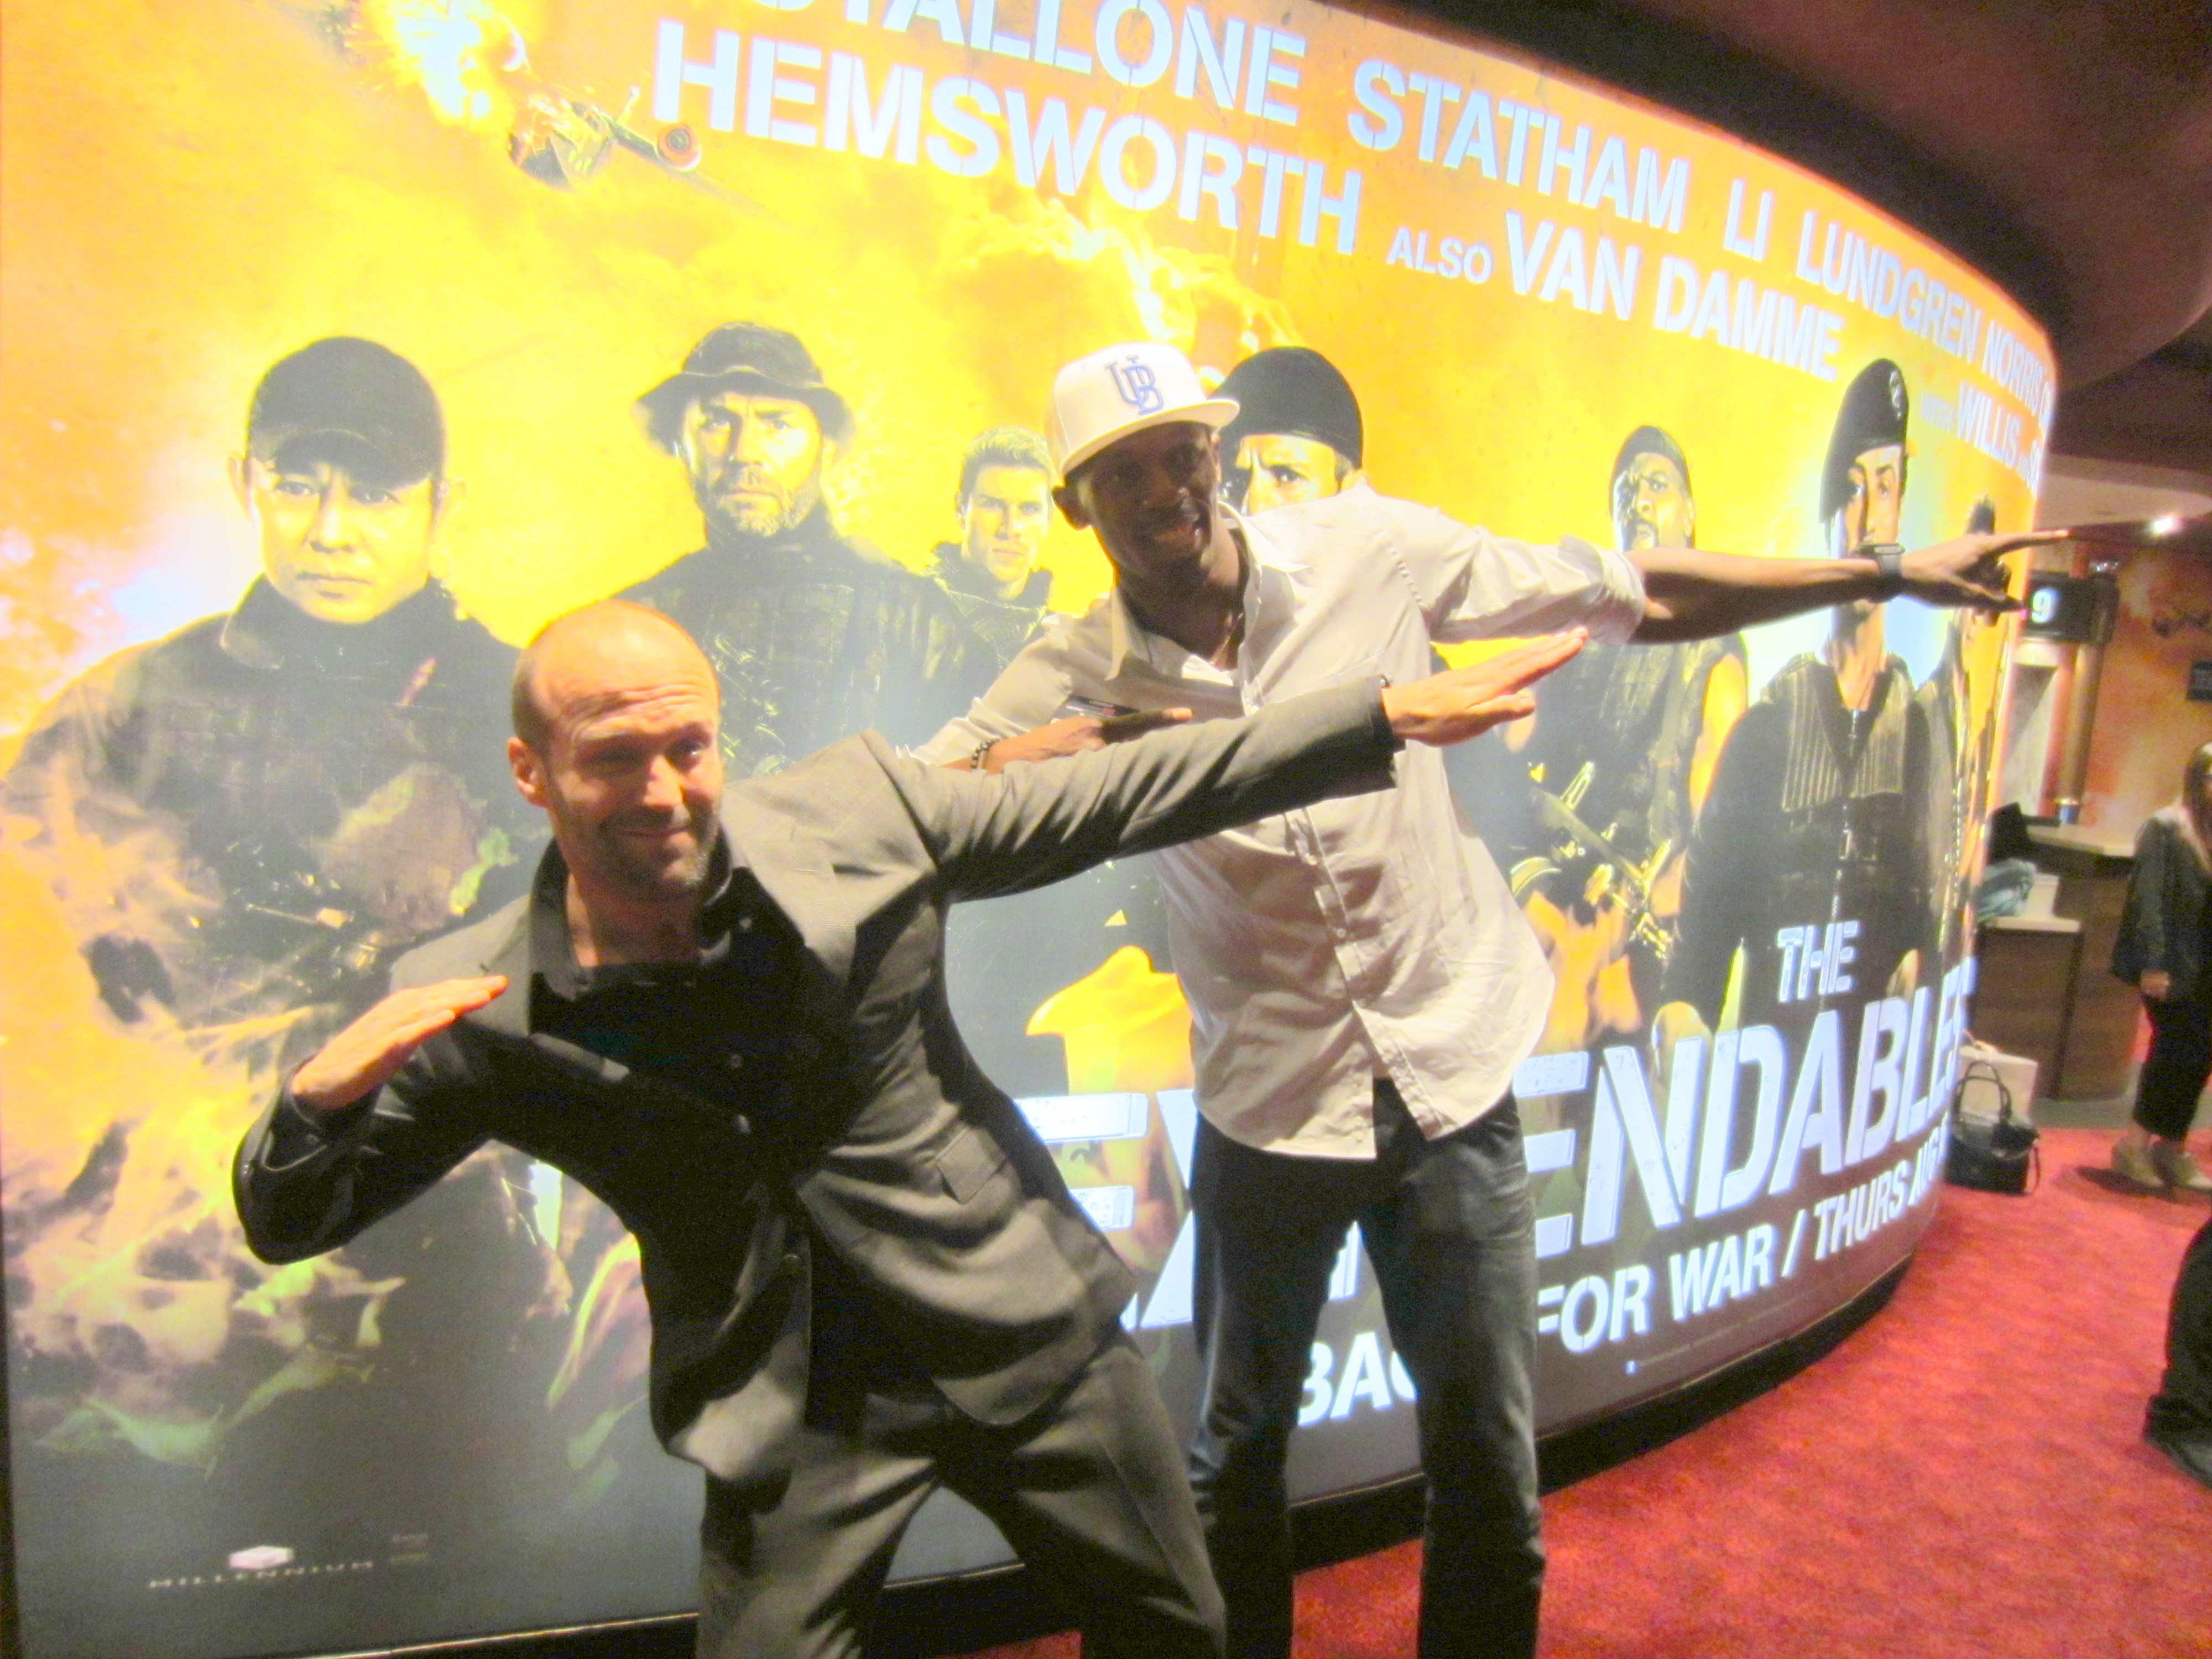 With Jason Statham at the Premier of The Expendables 2